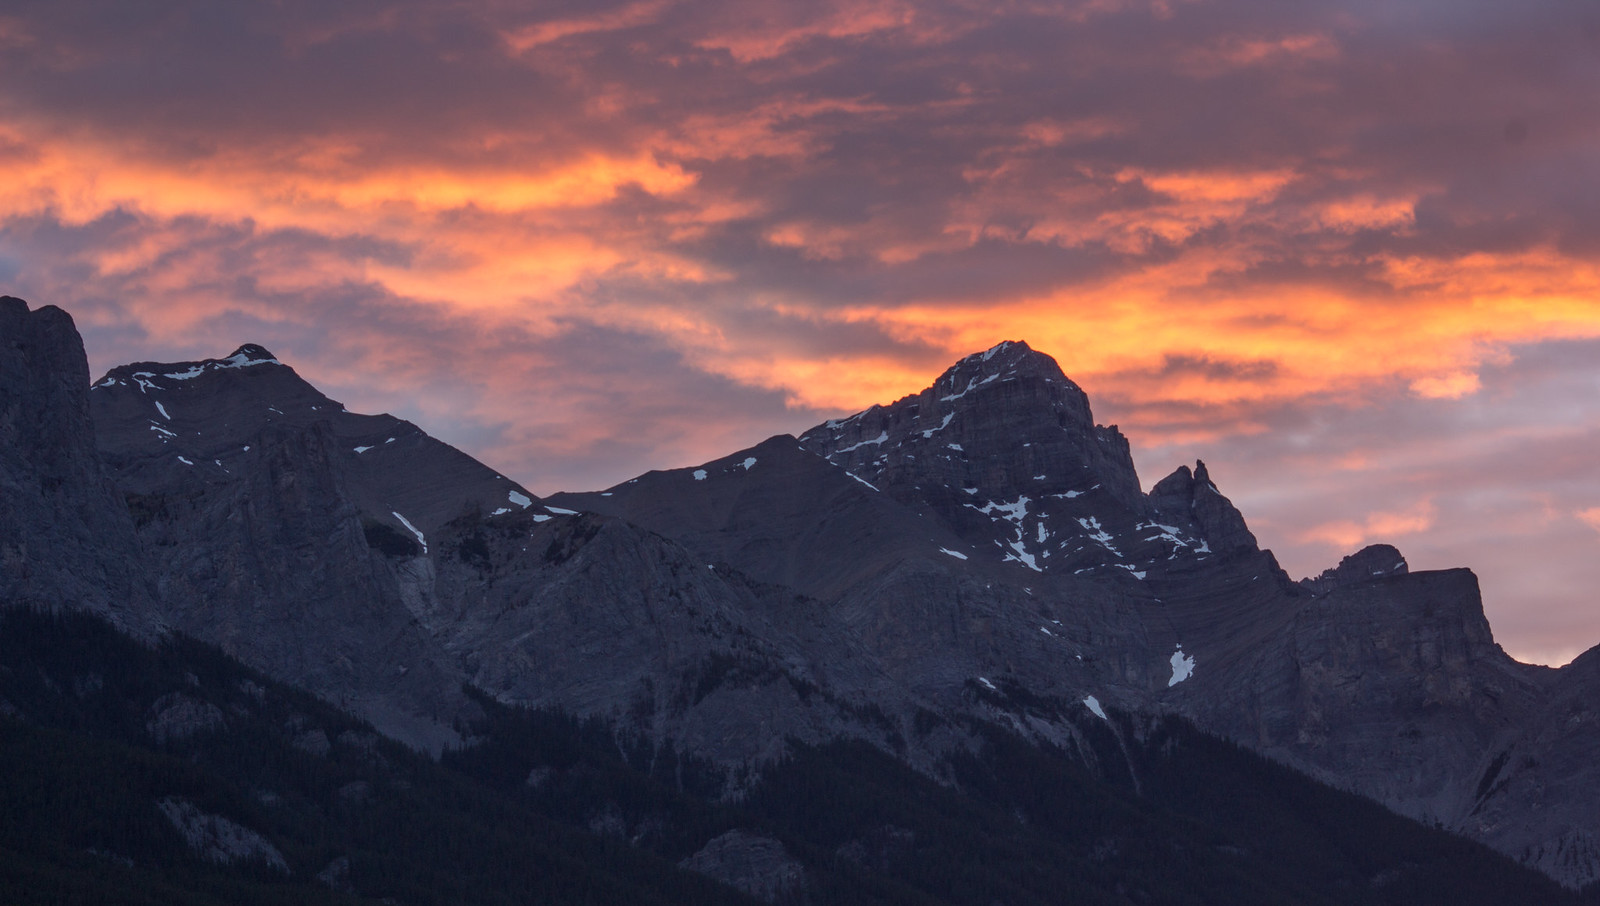 Red and orange clouds over Mount Rundle, Canmore